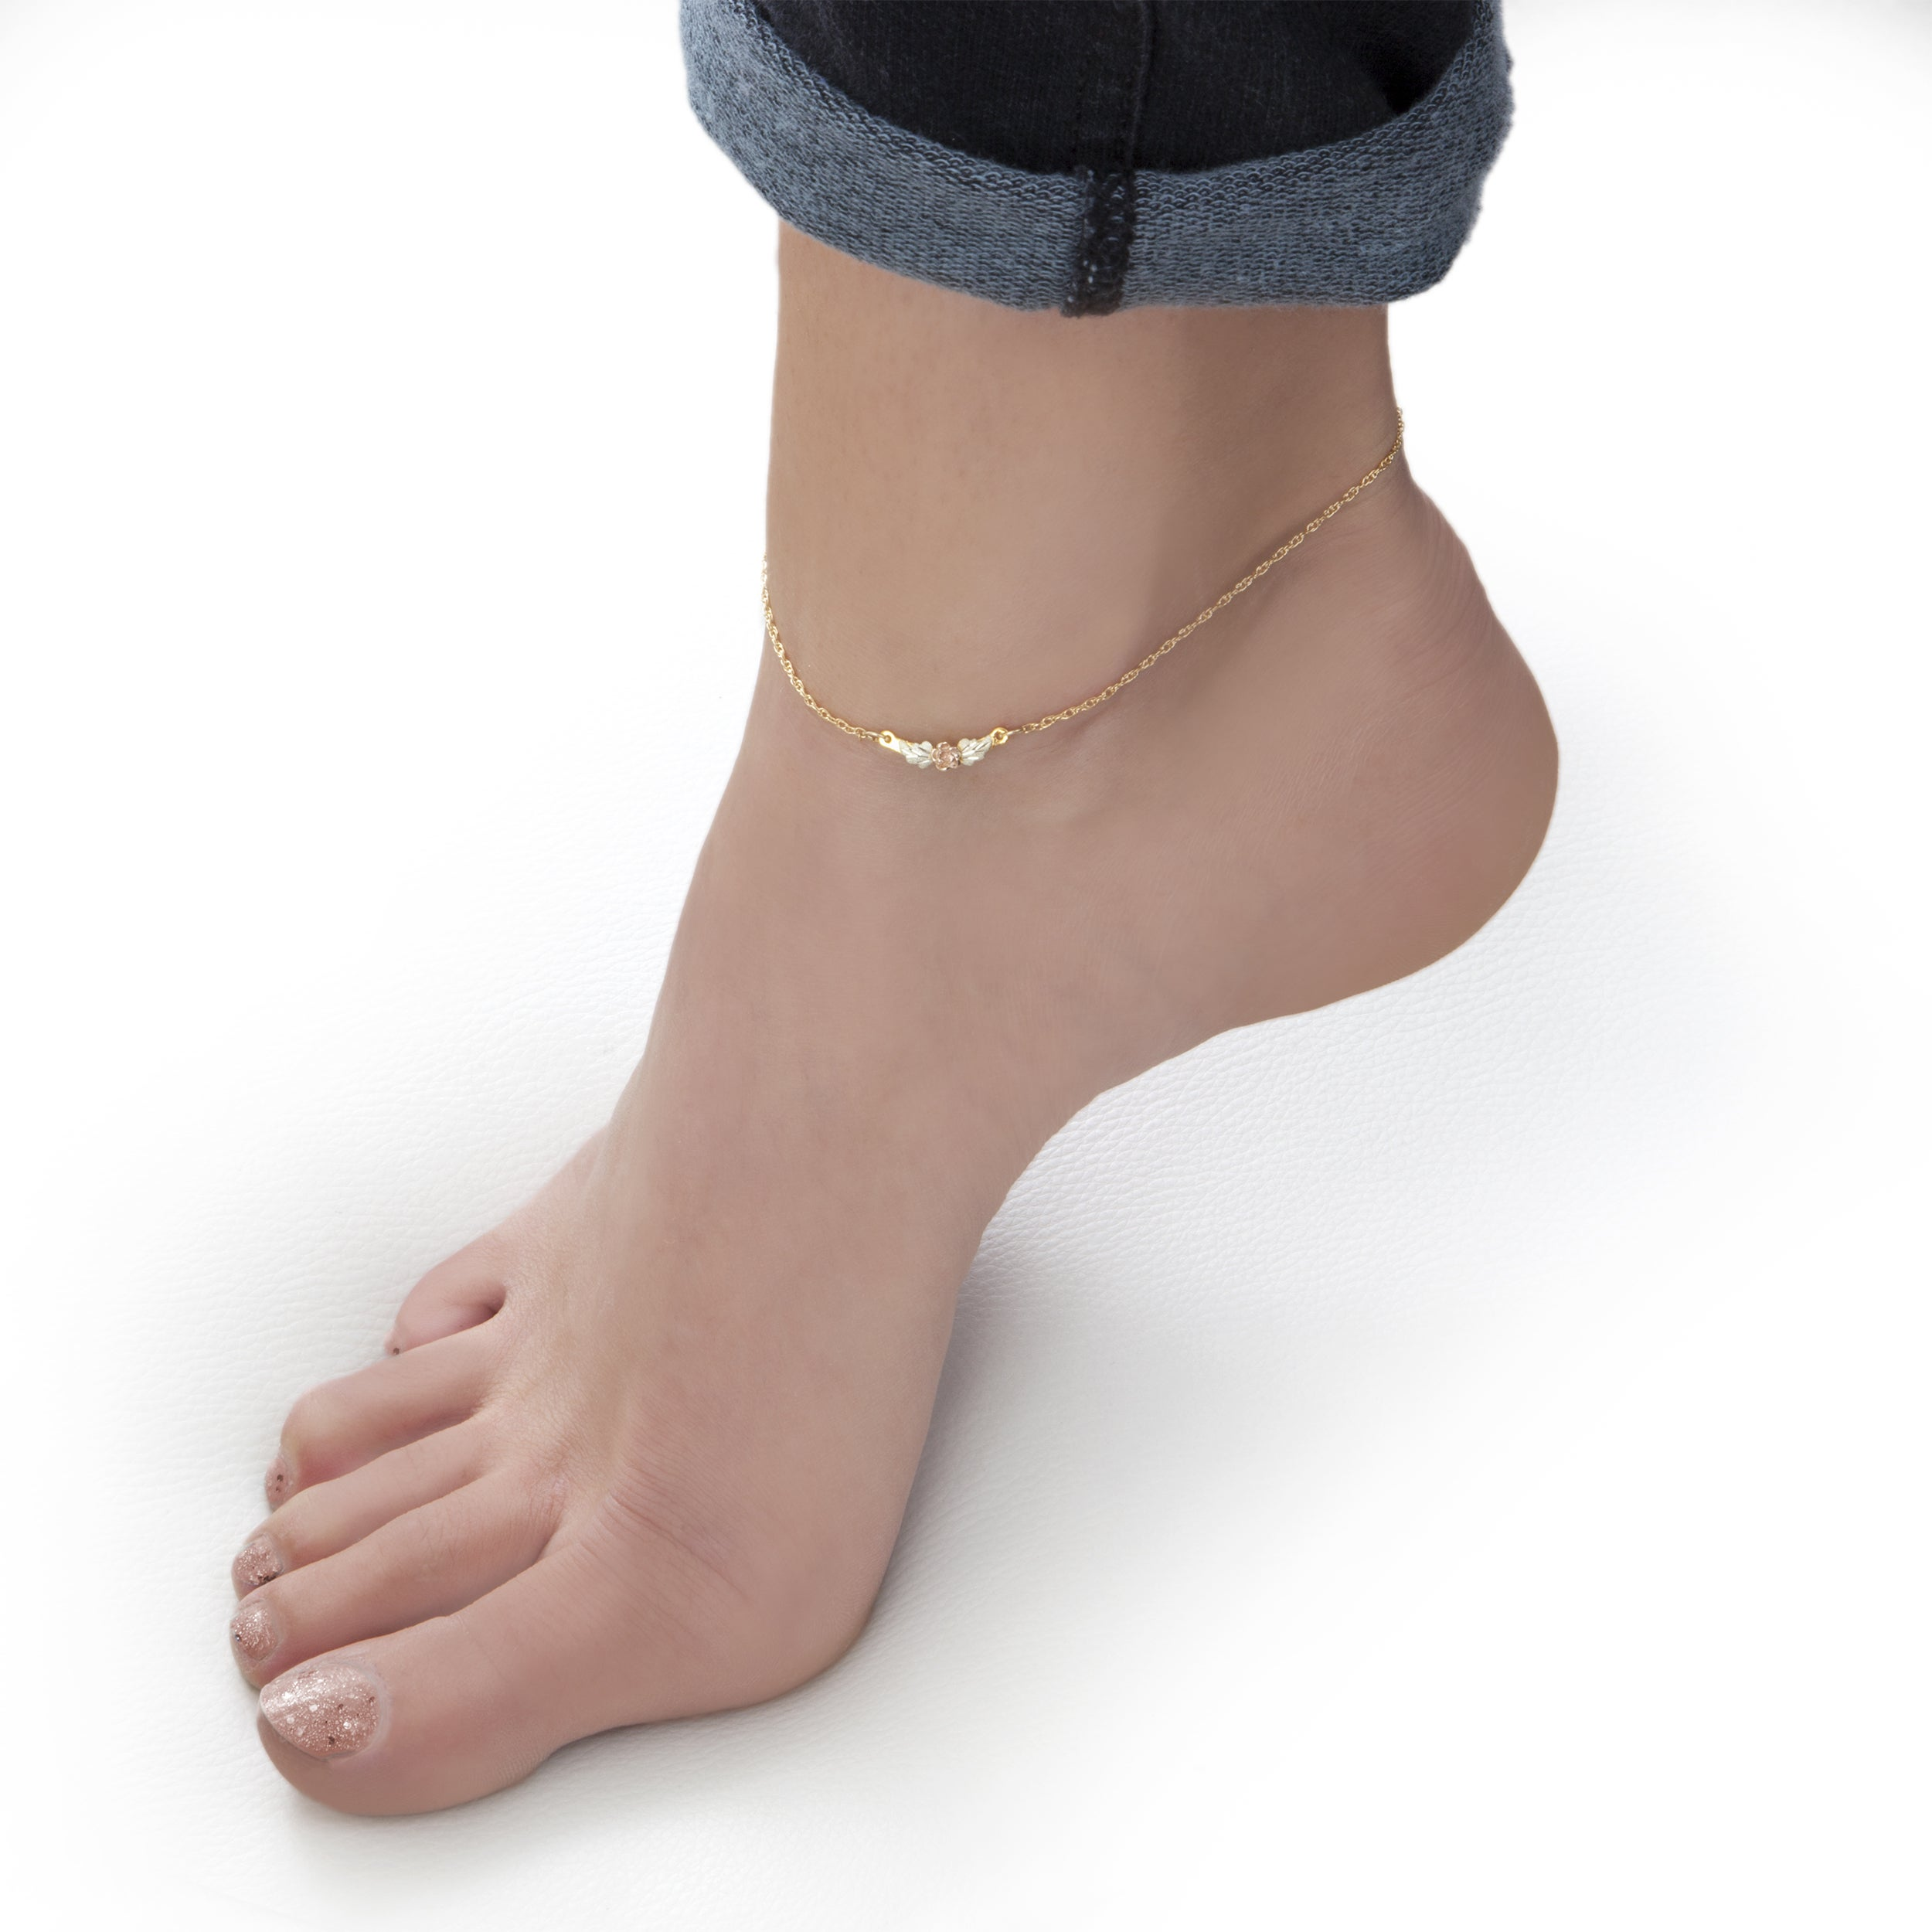 women new jewelry gold ideas ladies wearing designs for anklets com anklet nationtrendz girls